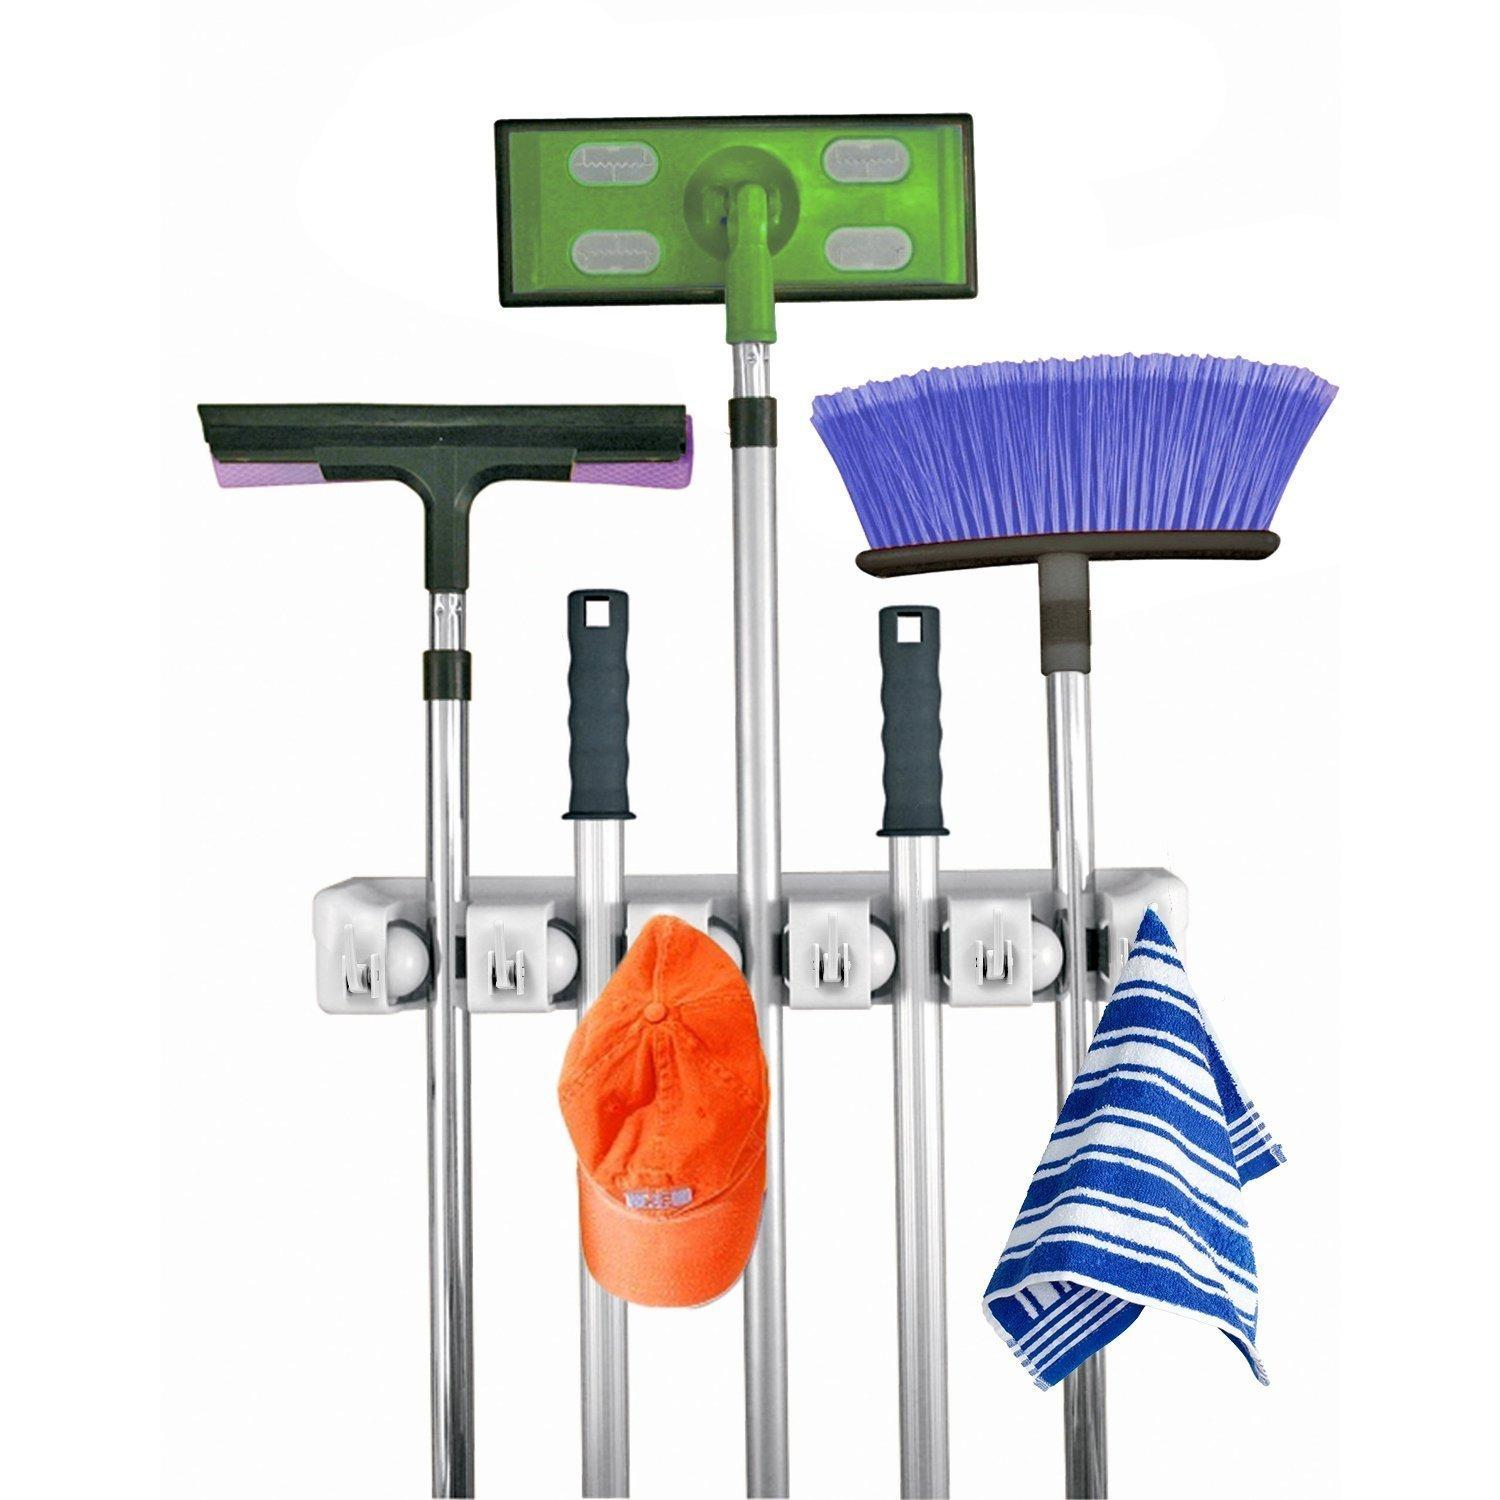 Home- It Mop and Broom Holder